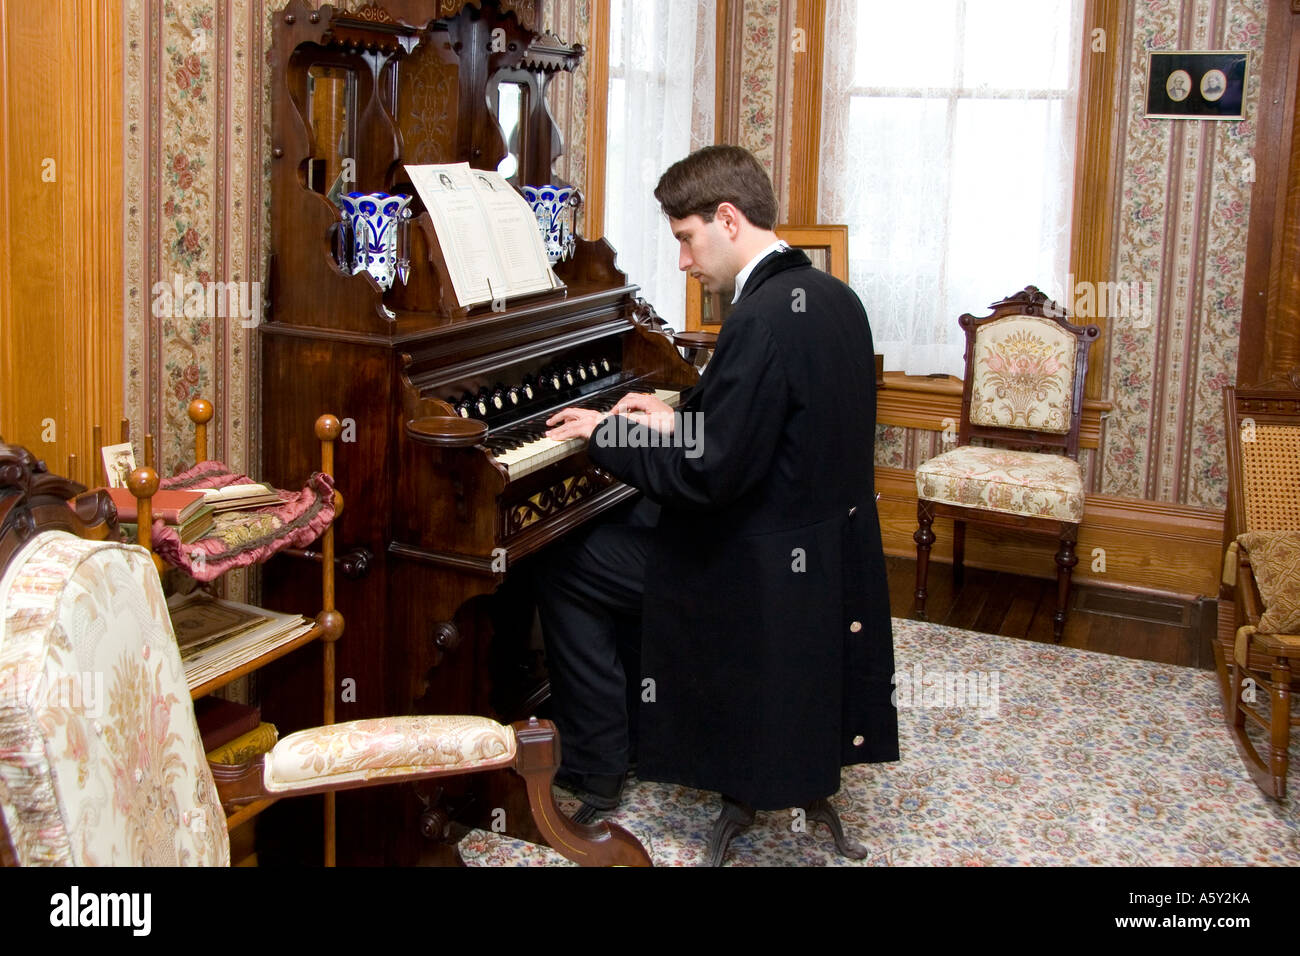 Male Dressed in Victorian Clothing Playing Victorian Pump Organ in Parlor, Nineteenth Century Texas Country Home - Stock Image